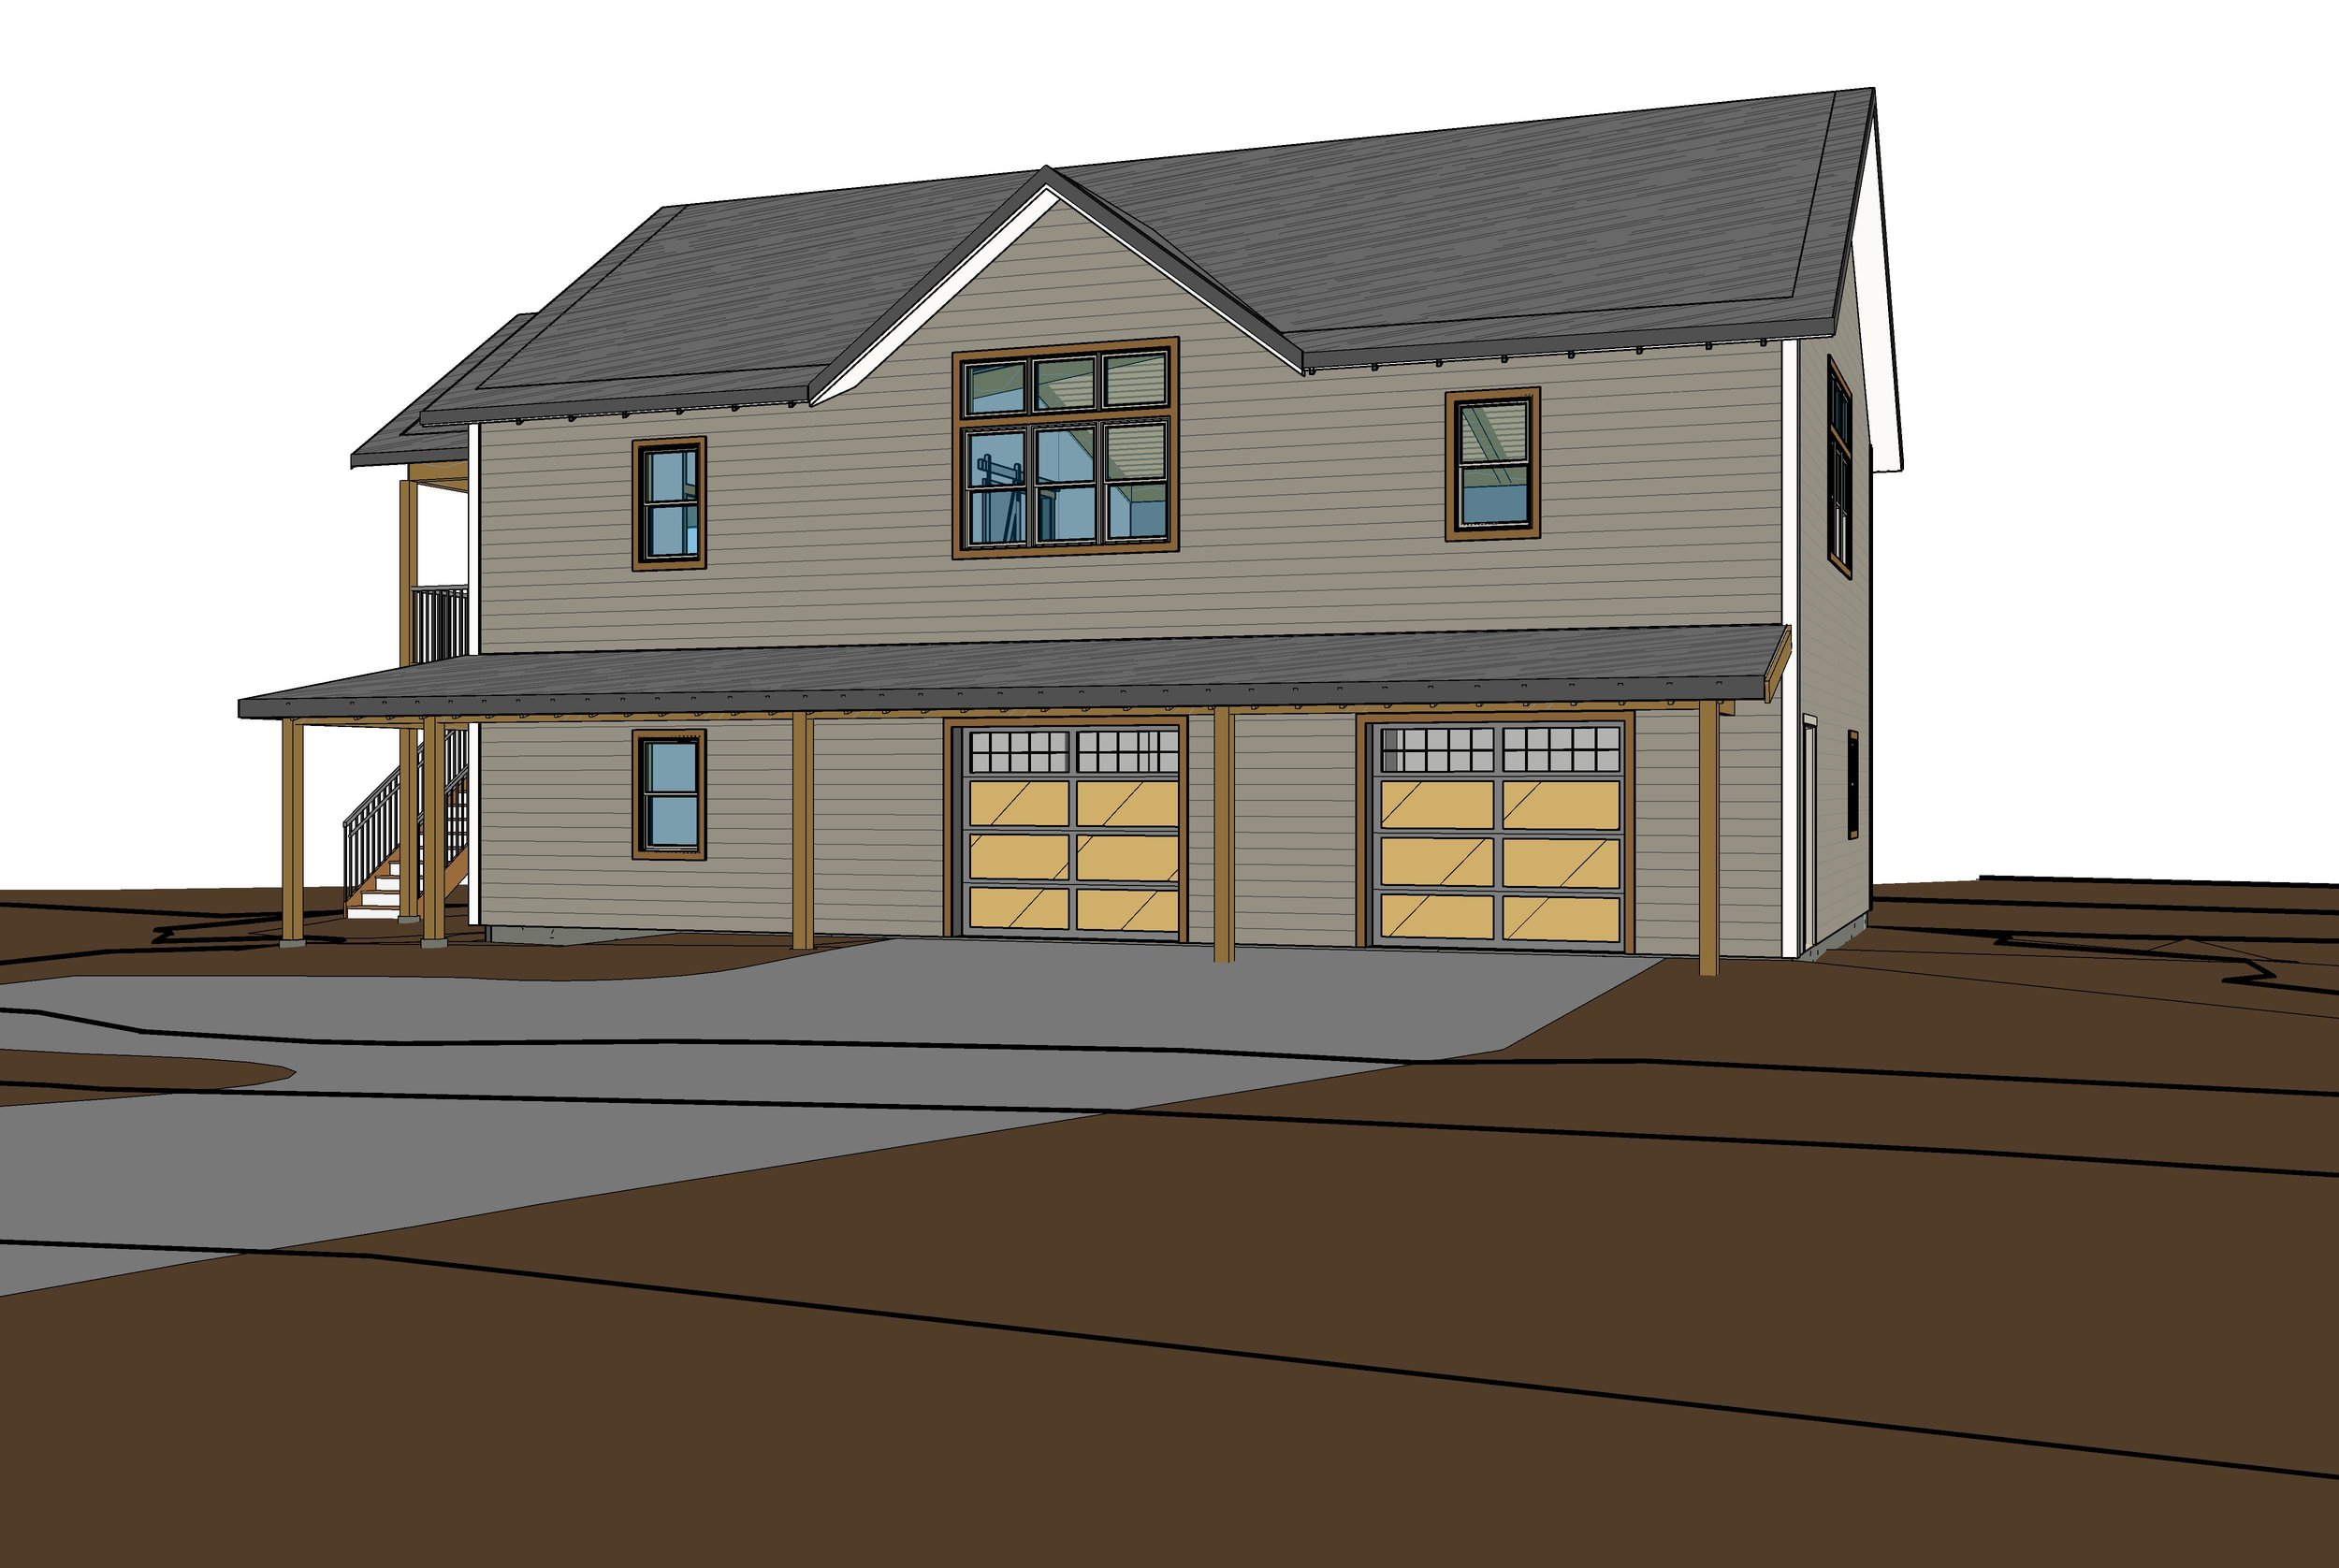 Entry side view of the home during the design phase